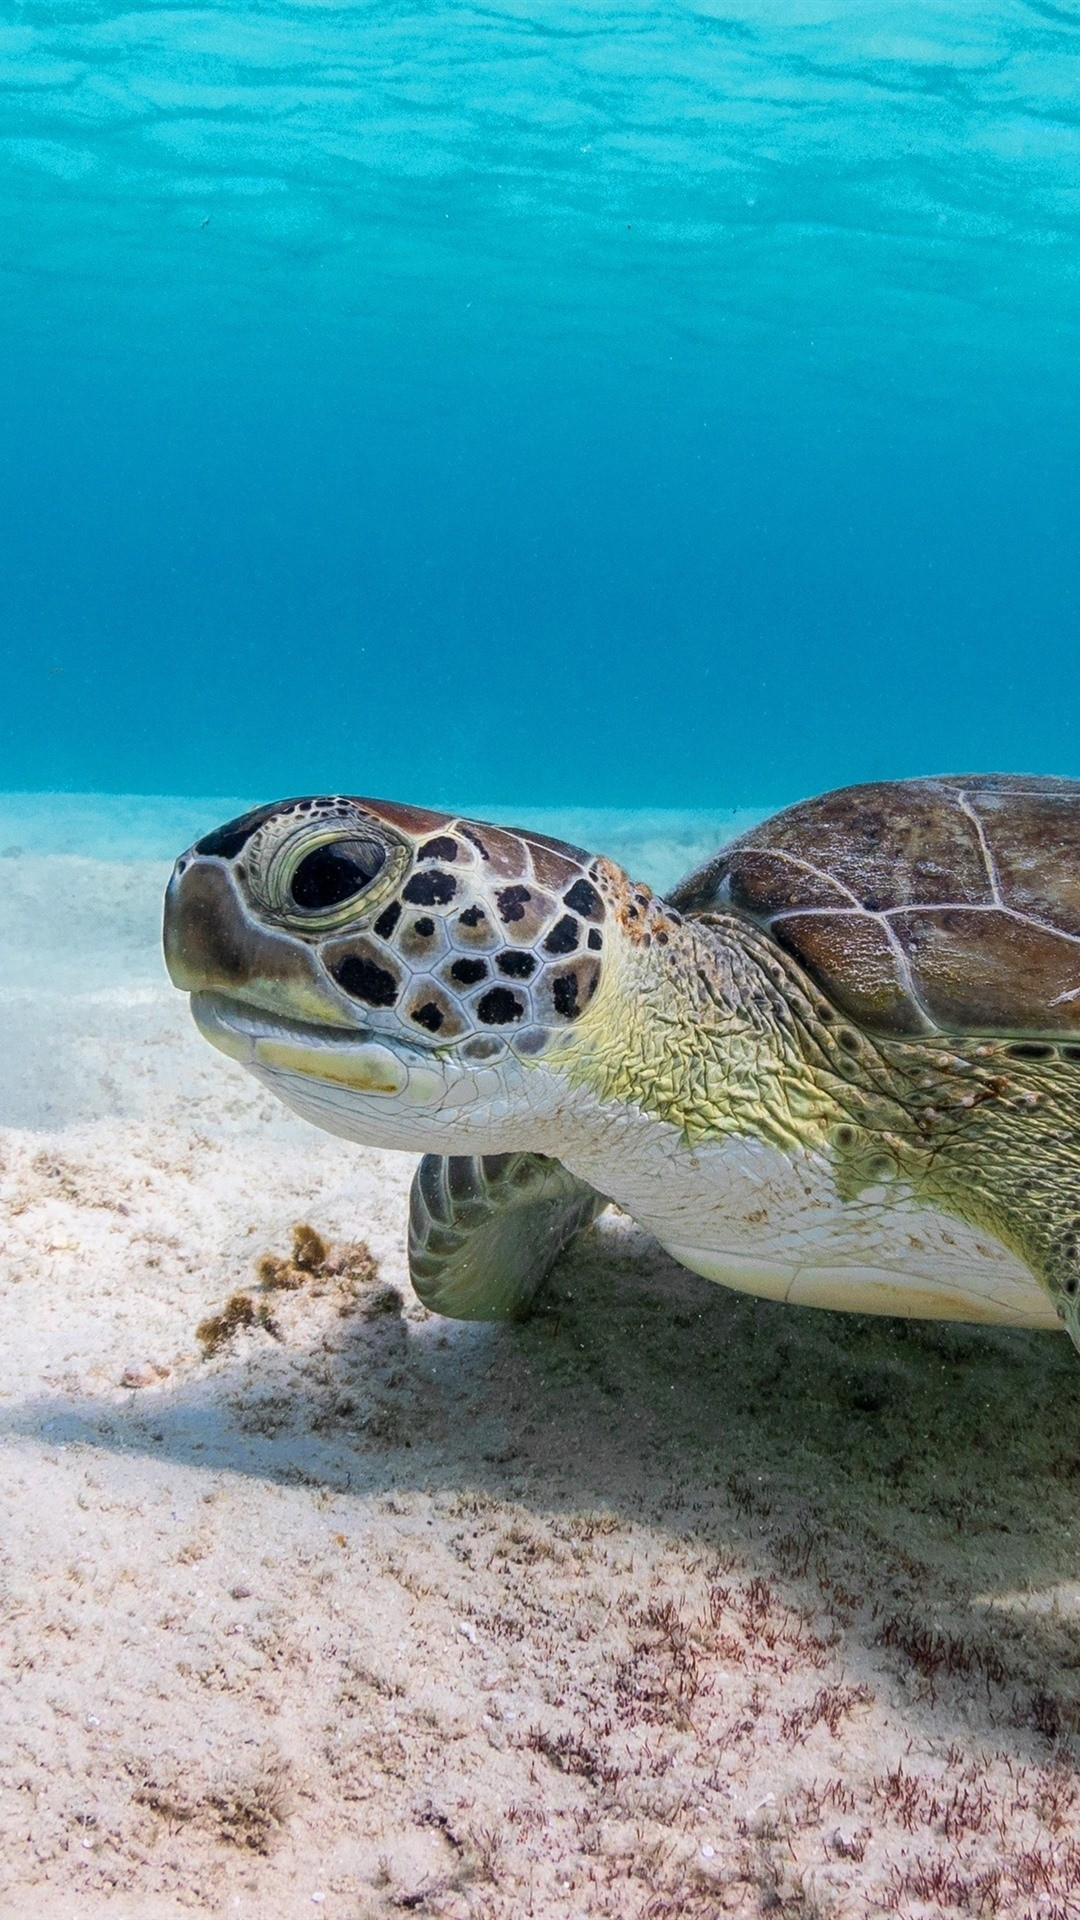 Turtle wallpaper for iPhone